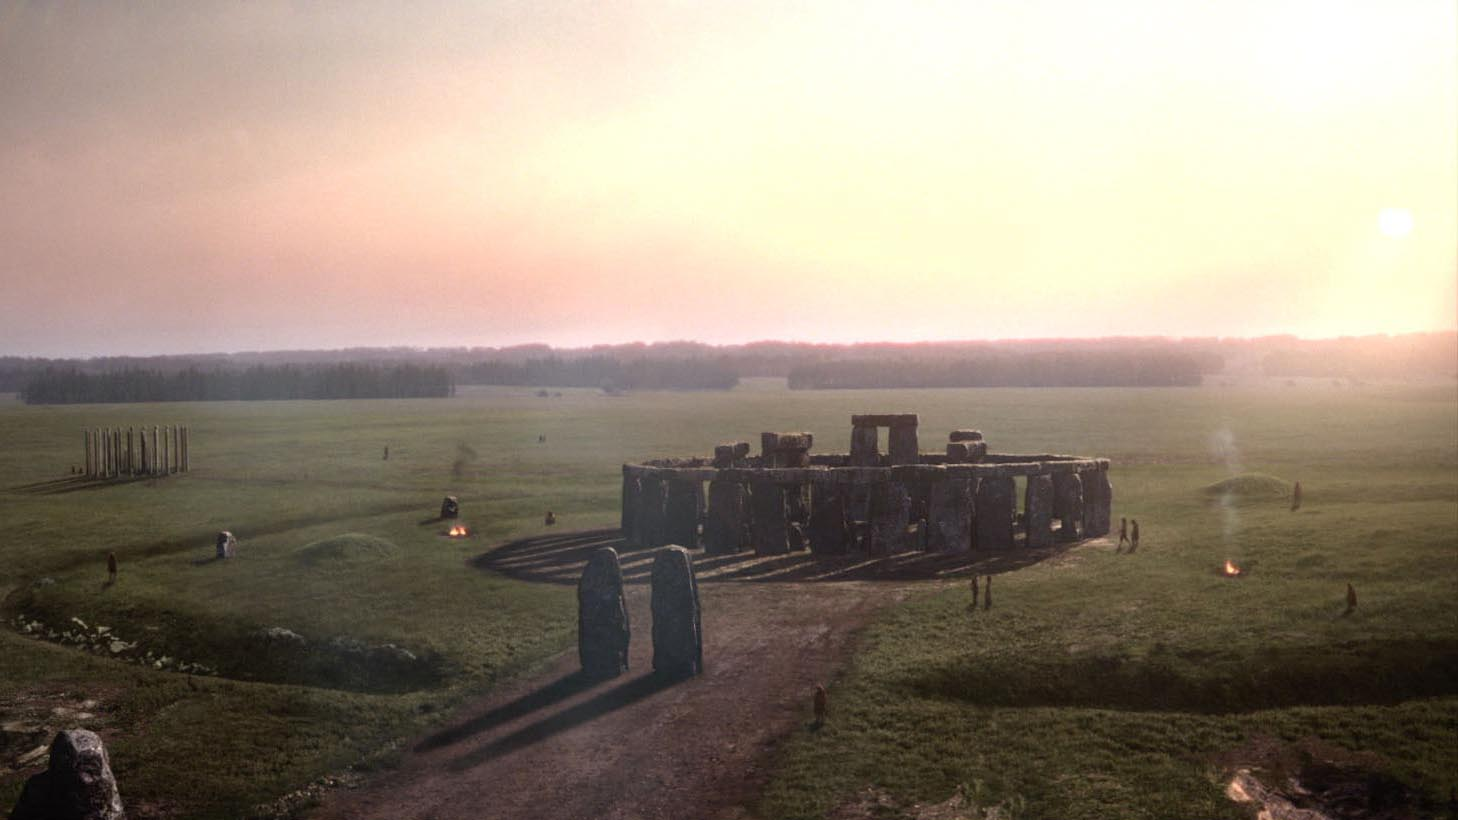 "<a href=""/stonehenge-uncovered"">Stonehenge Uncovered</a>"